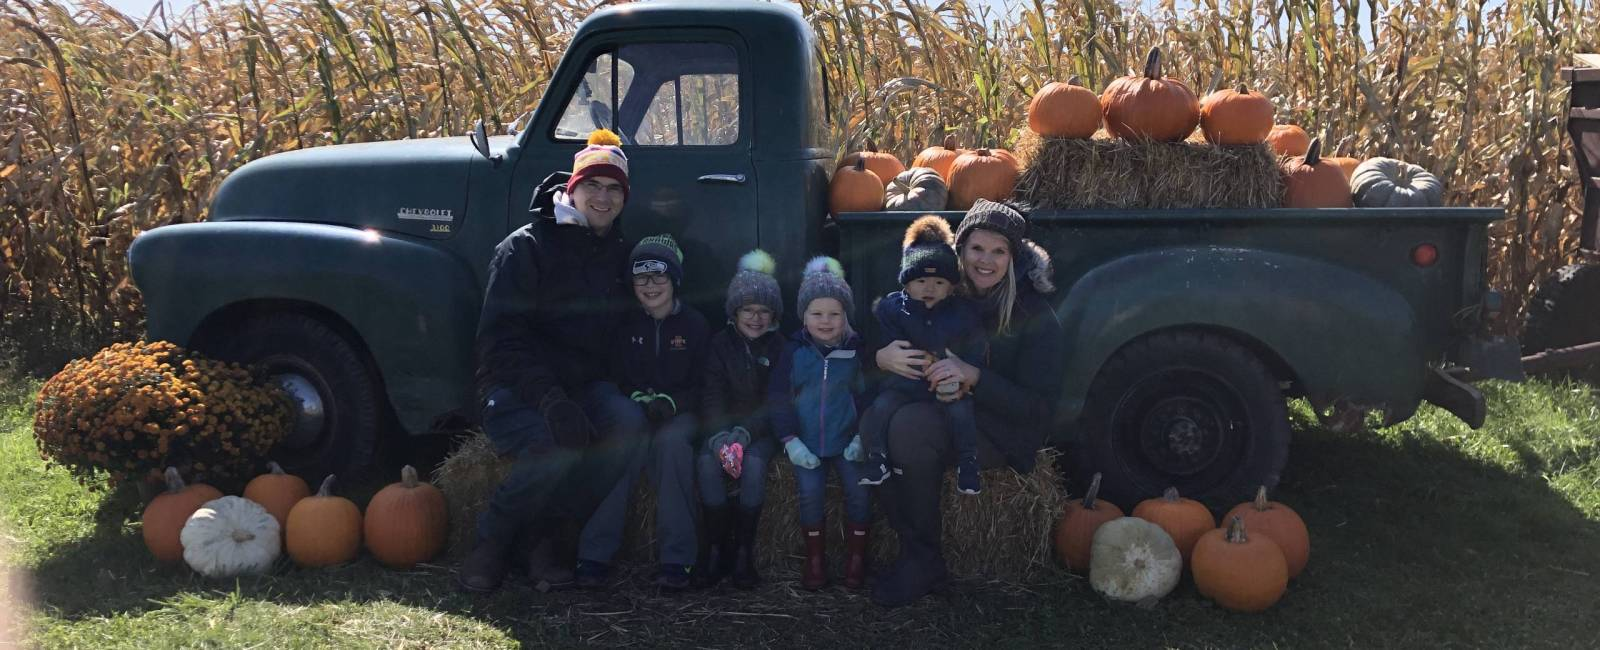 Our Fall-Tastic Visit to The Pumpkin Ranch